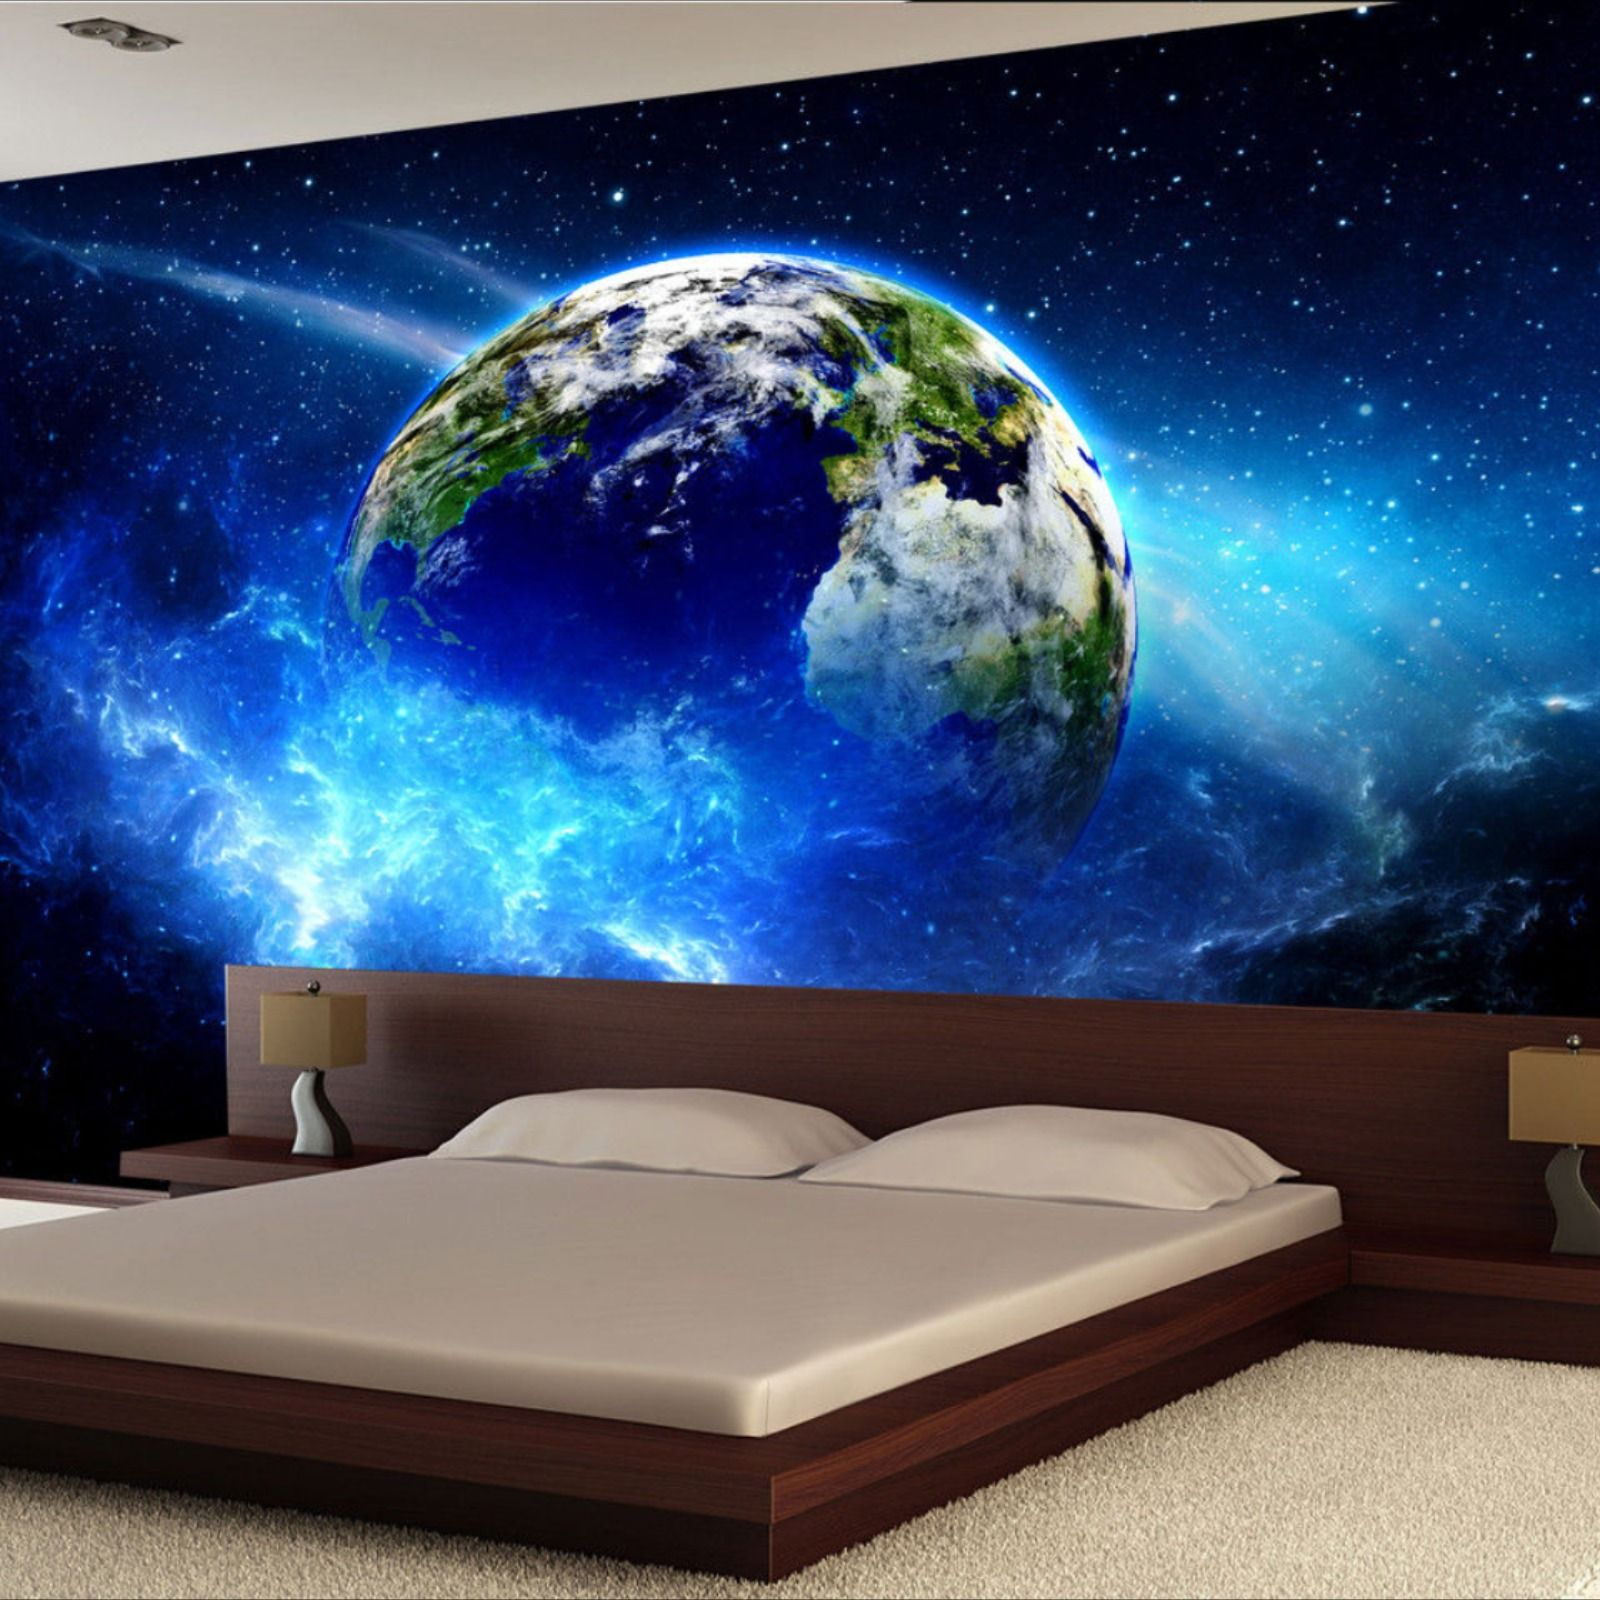 Planet In Space Wall Mural Photo Wallpaper Giant Decor Paper Poster Free Paste Giants Decor Wall Murals Photo Wallpaper